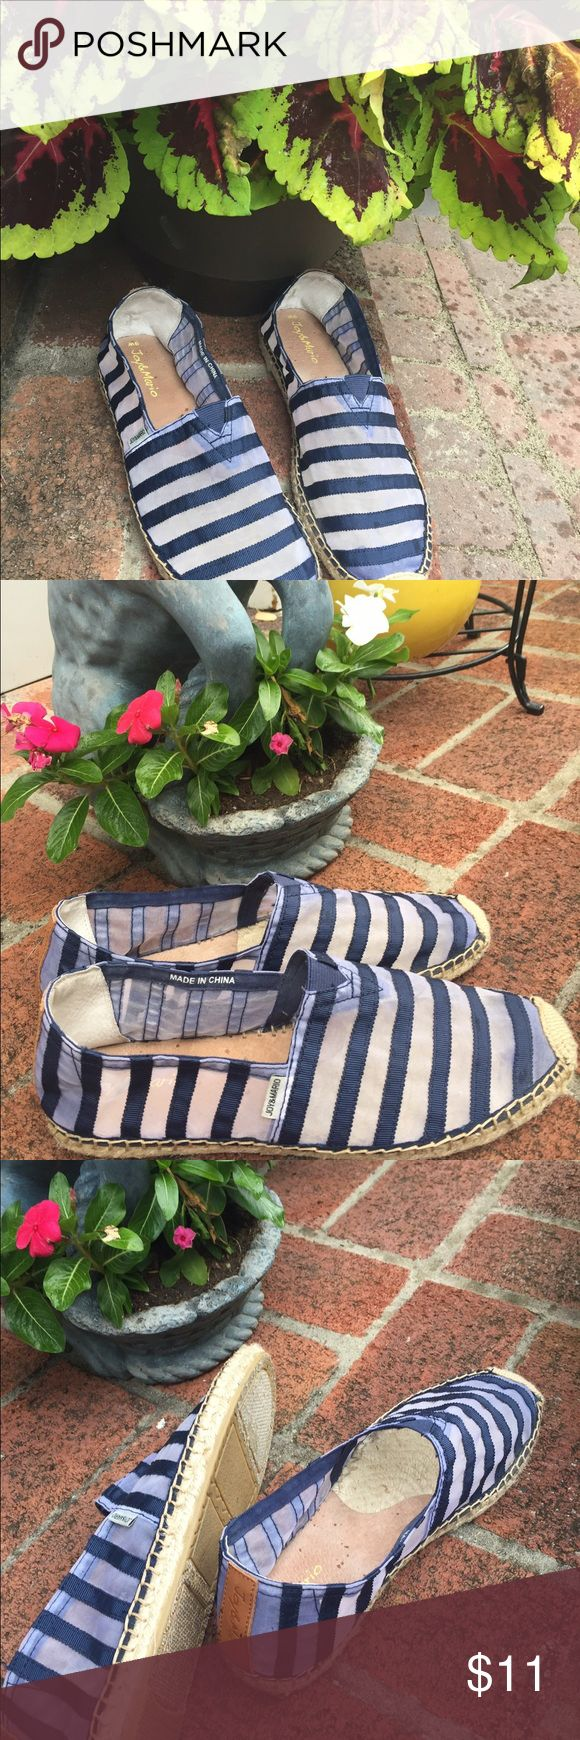 Joy & Mario Blue/Sheer Espadrilles Navy blue & sheer striped espadrilles from Joy & Mario.  Worn more often than the black ones I have listed but still in excellent condition.  Get many compliments when I wore them. Haven't even owned a year. Joy & Mario Shoes Espadrilles